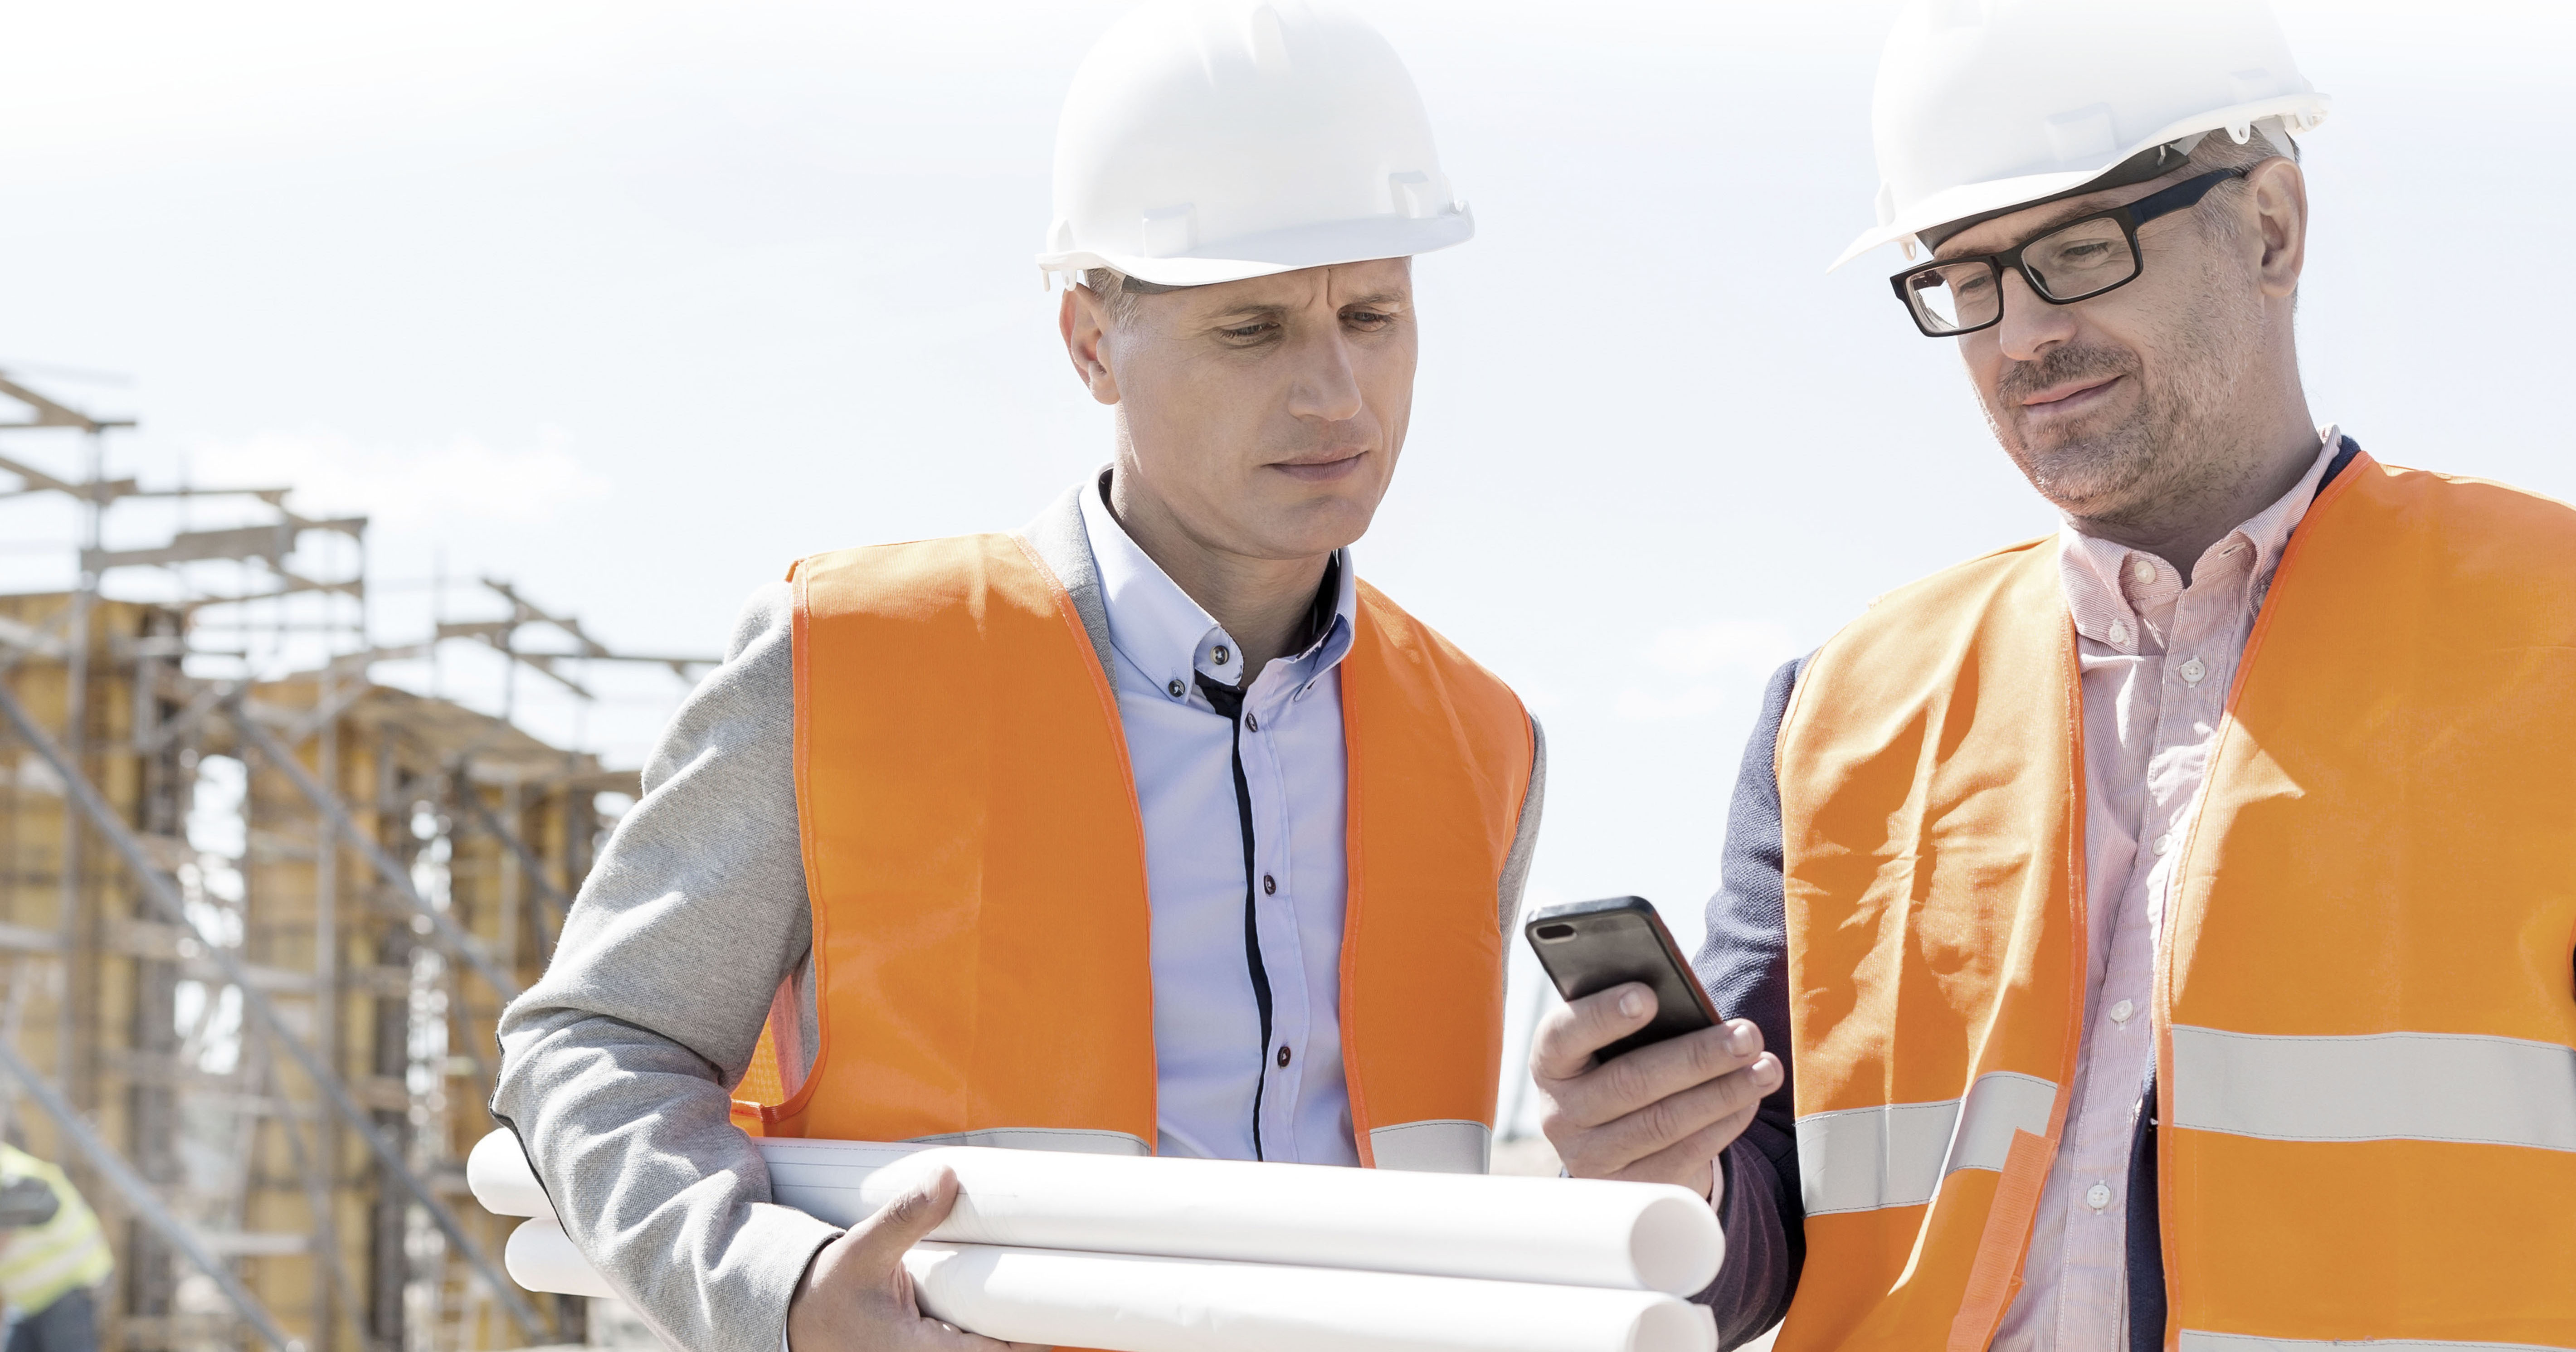 3 Great Phone Cases for the Jobsite